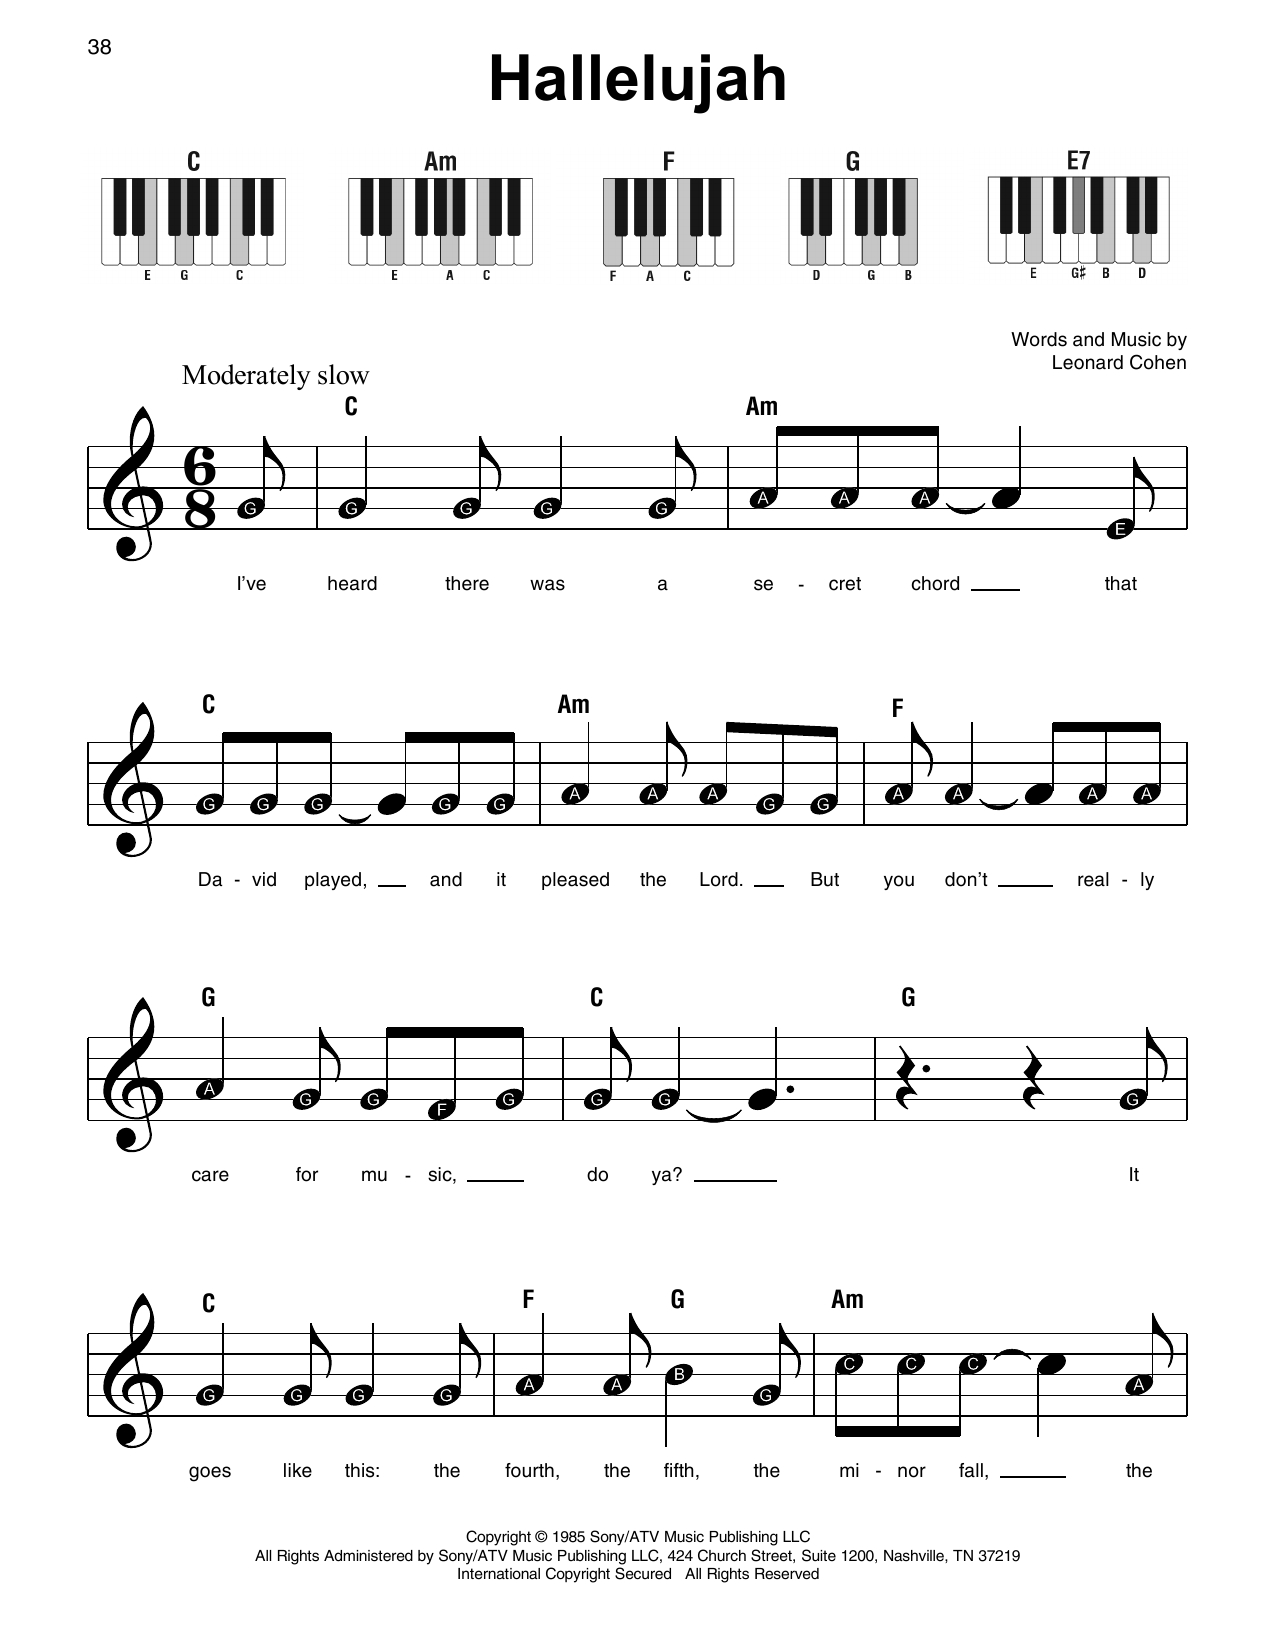 Hallelujah Sheet Music | Leonard Cohen | Super Easy Piano - Free Printable Piano Sheet Music For Hallelujah By Leonard Cohen